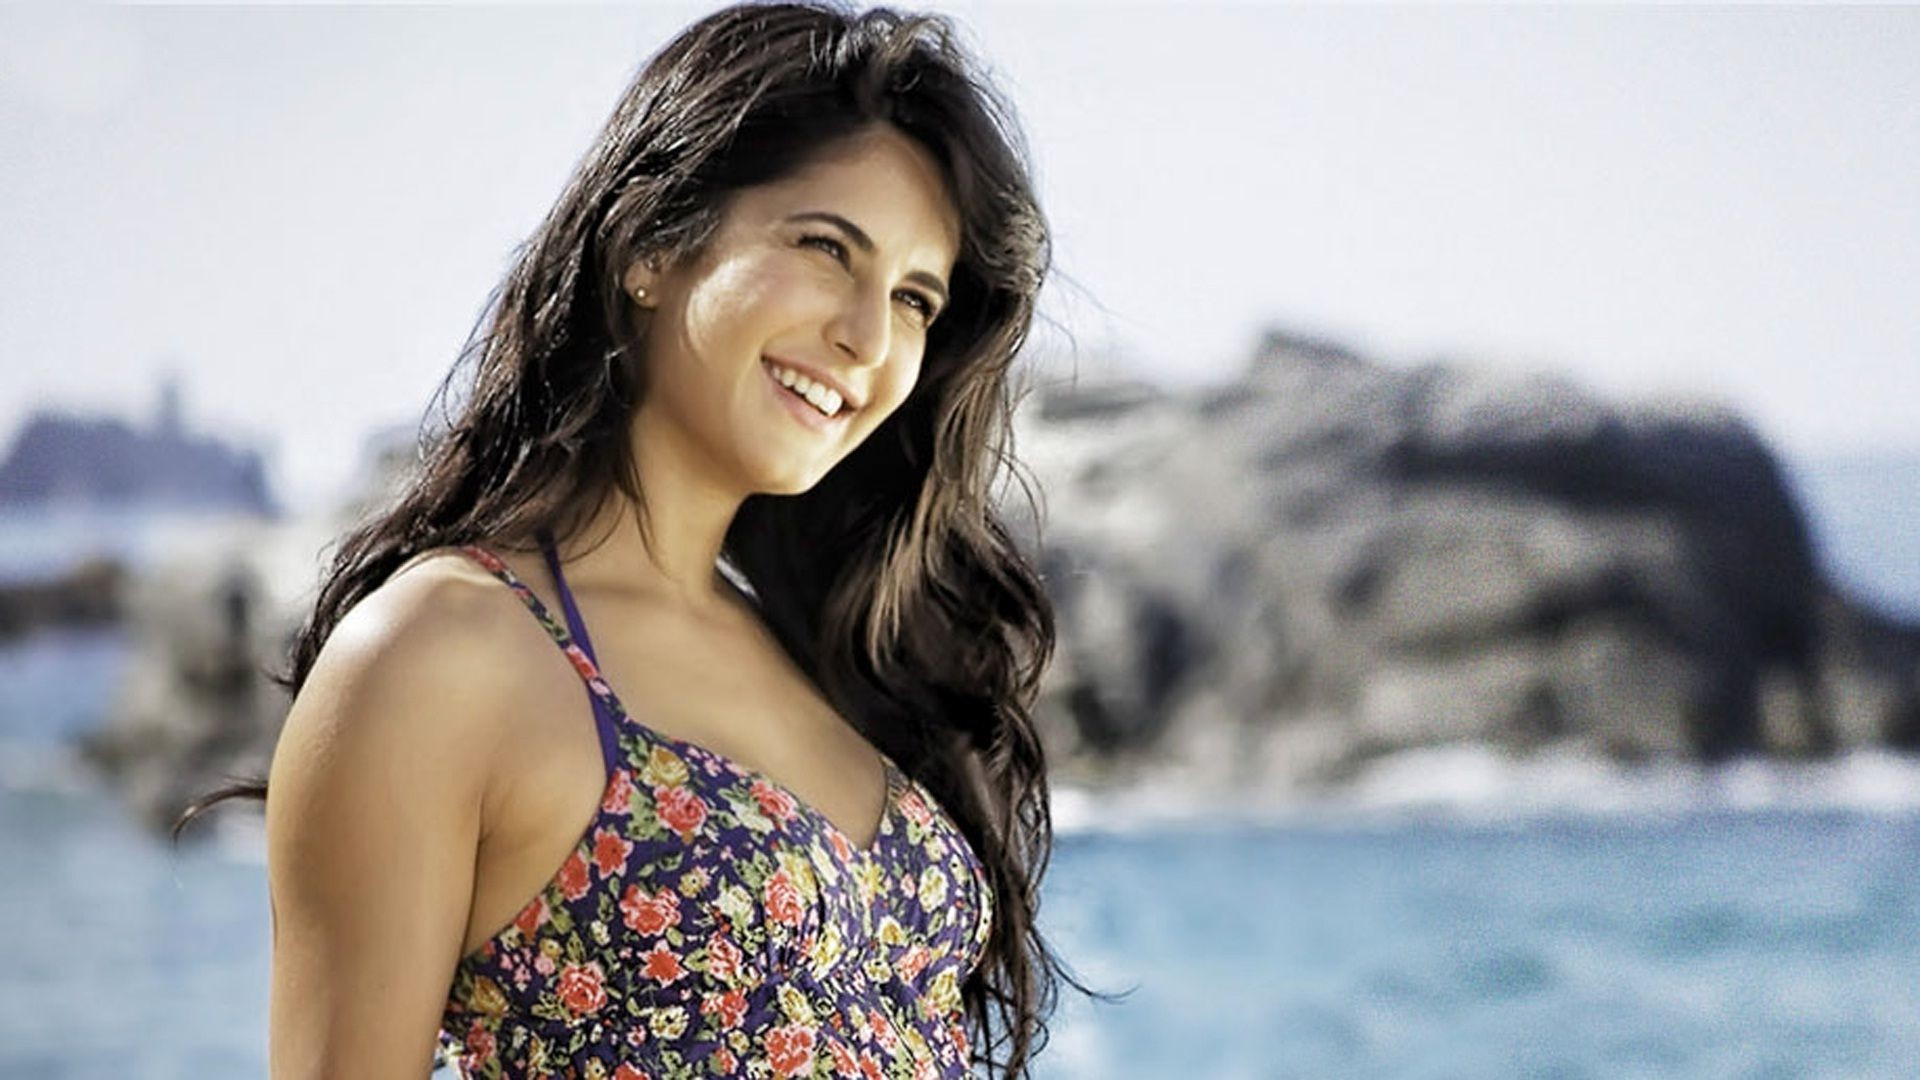 Hd Wallpapers Of Katrina Kaif 76 Pictures